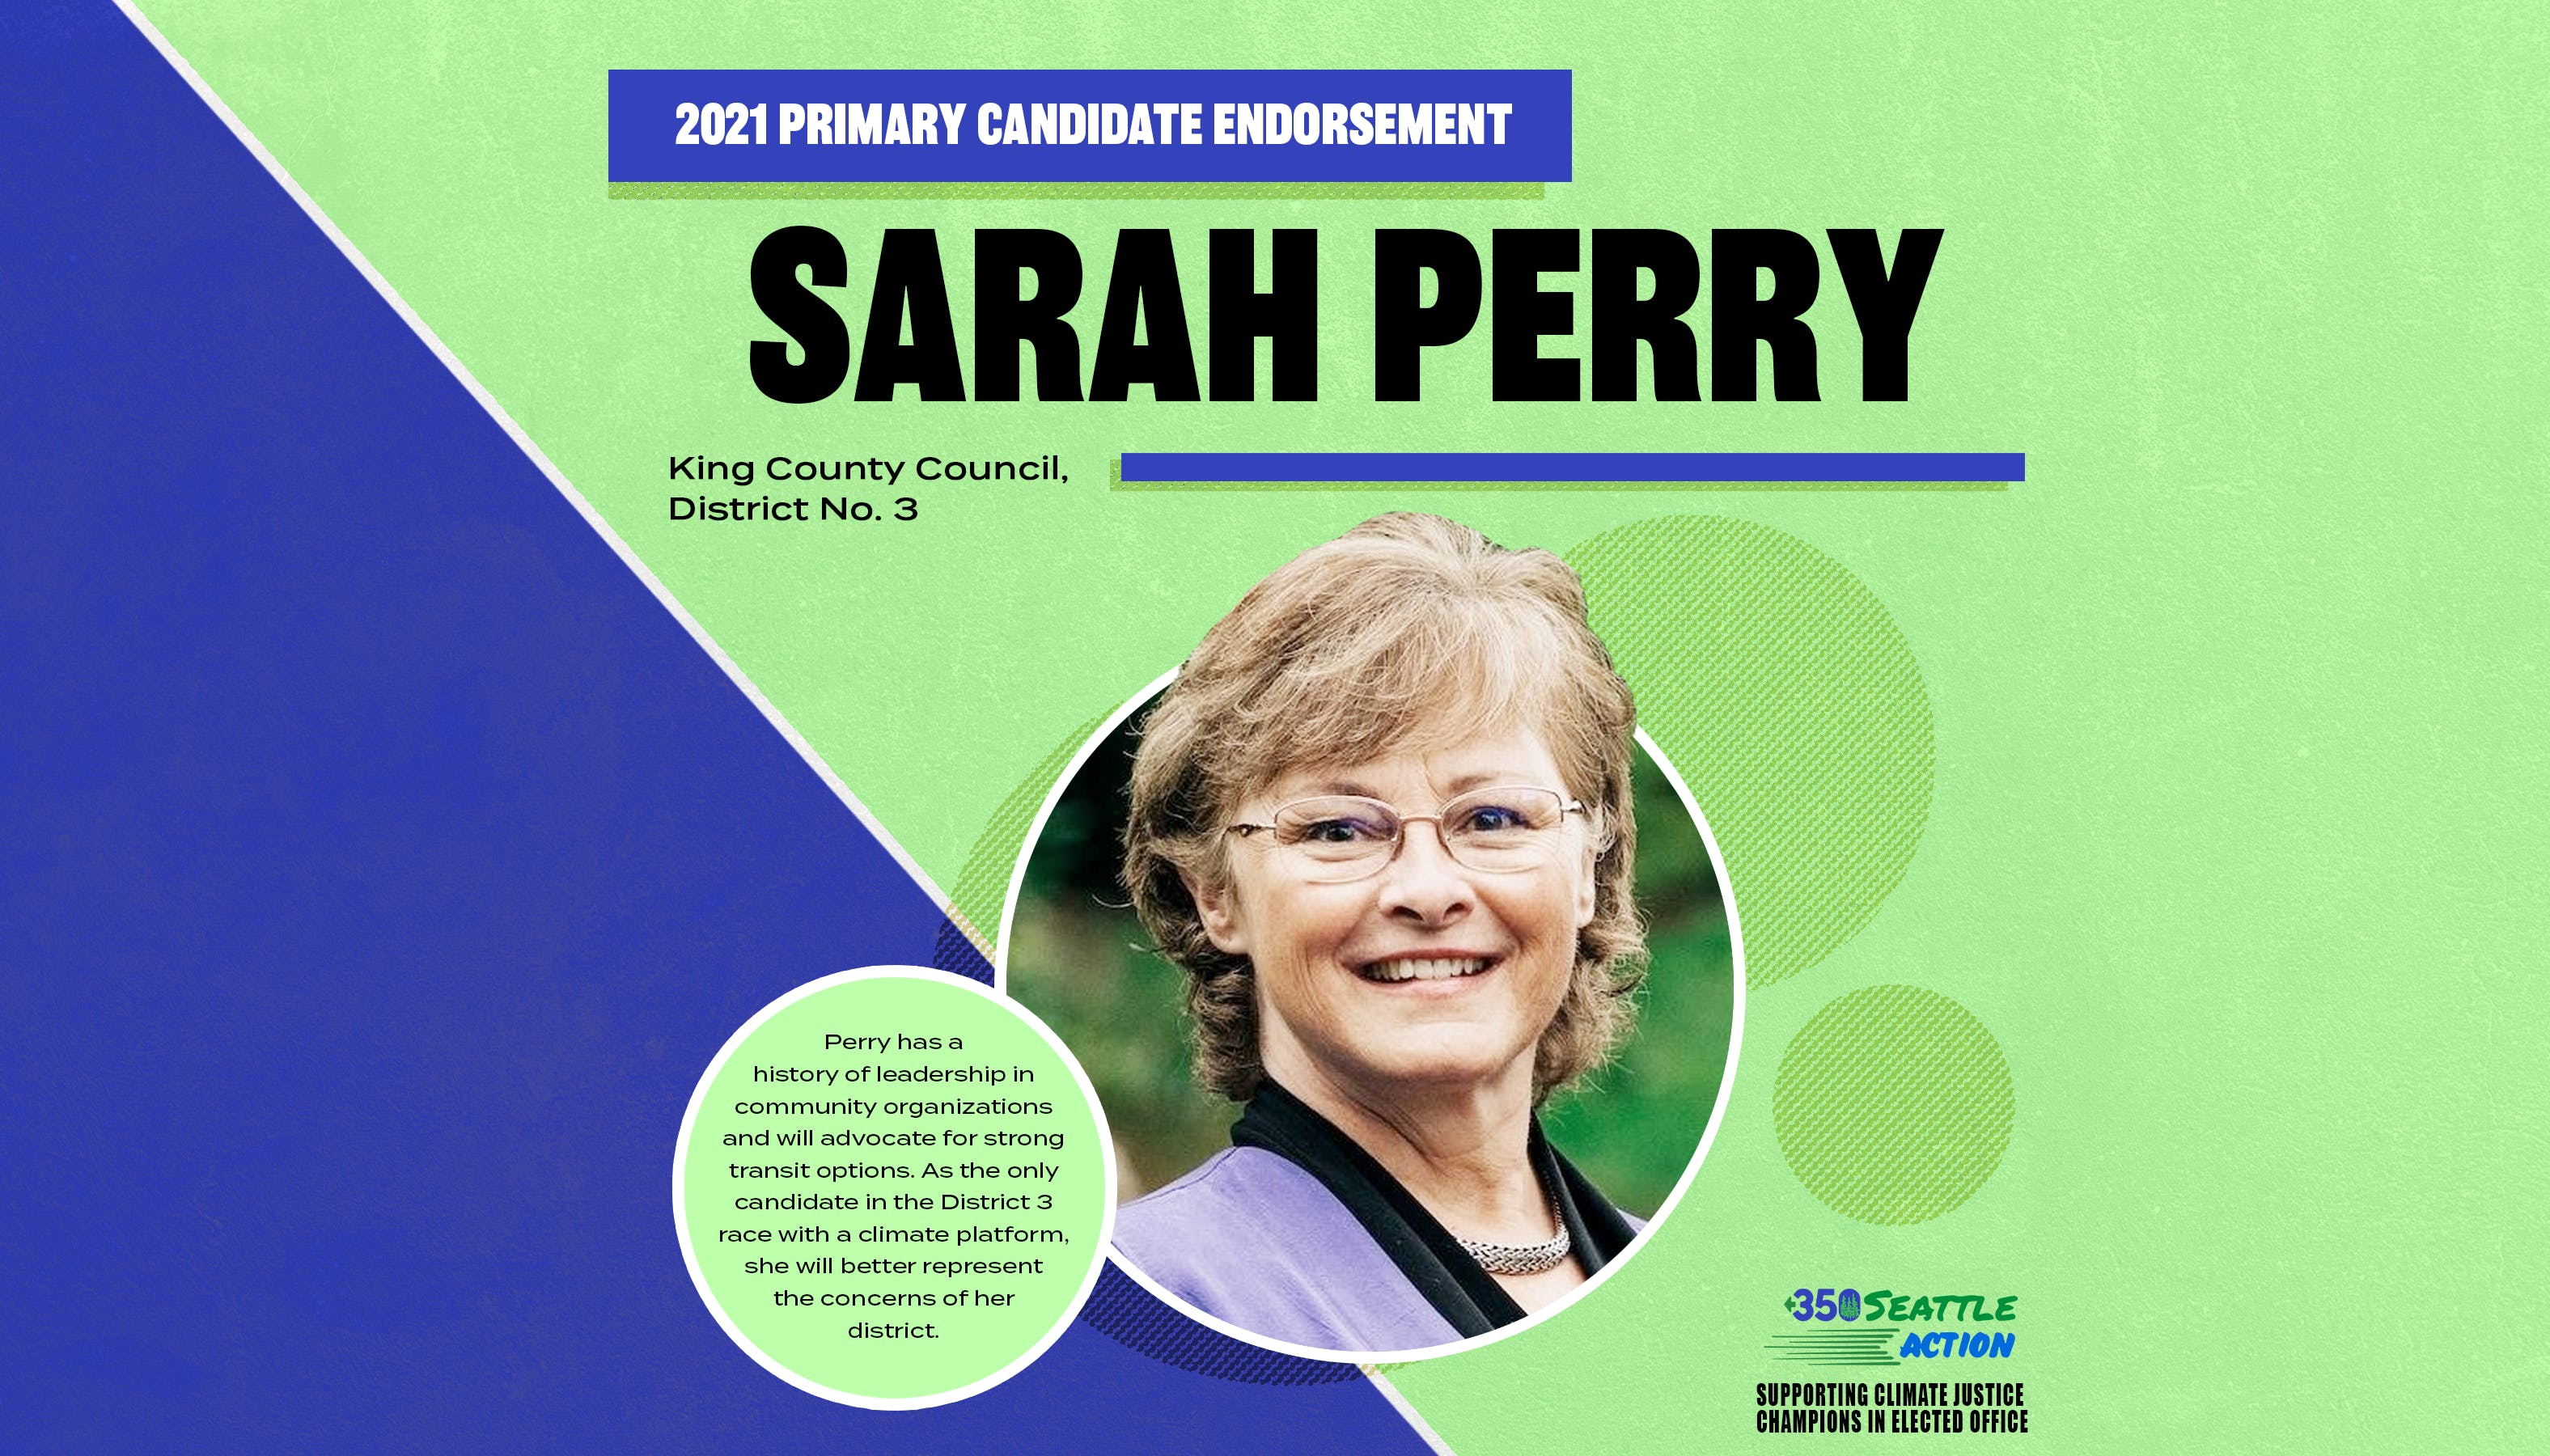 Sarah Perry Twitter.png